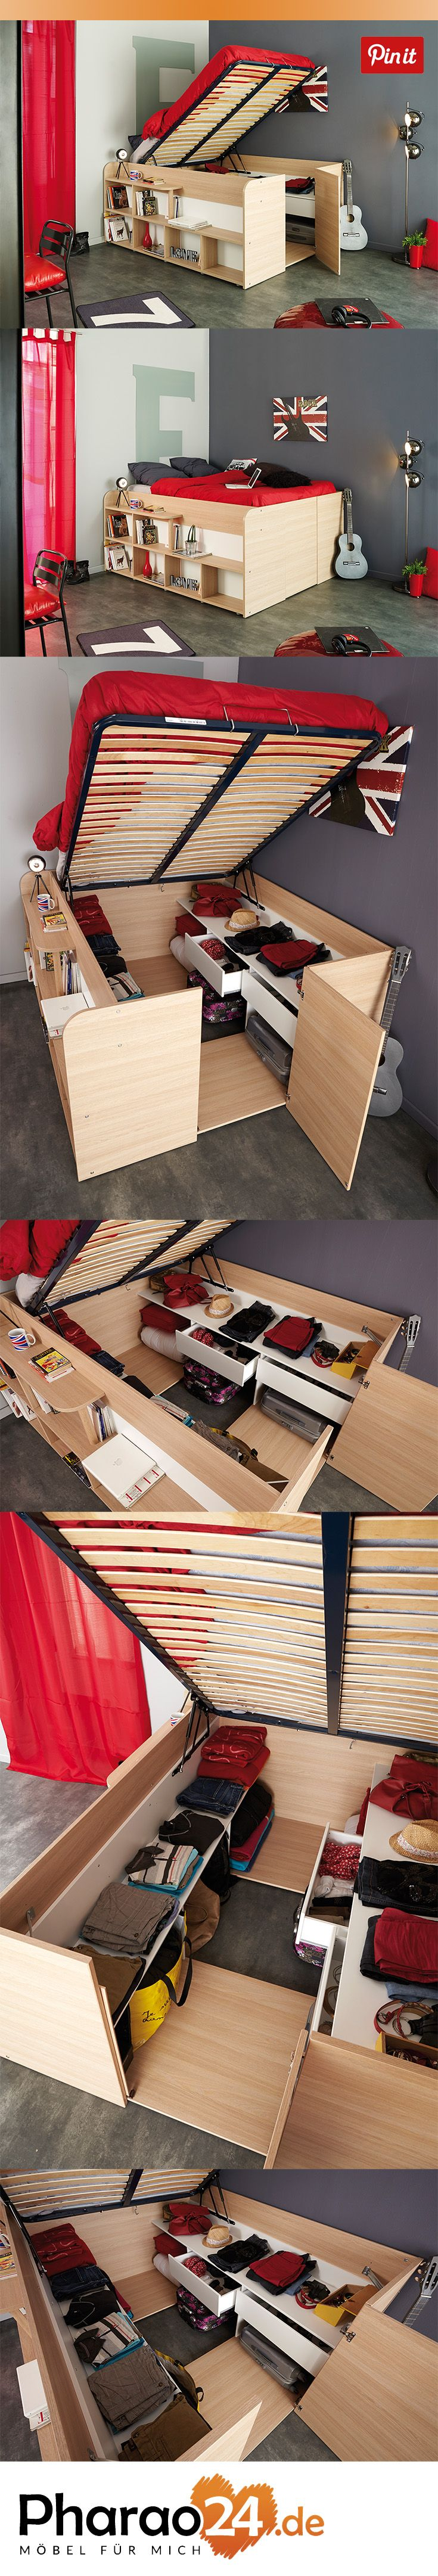 best betten images on pinterest bunk beds child room and